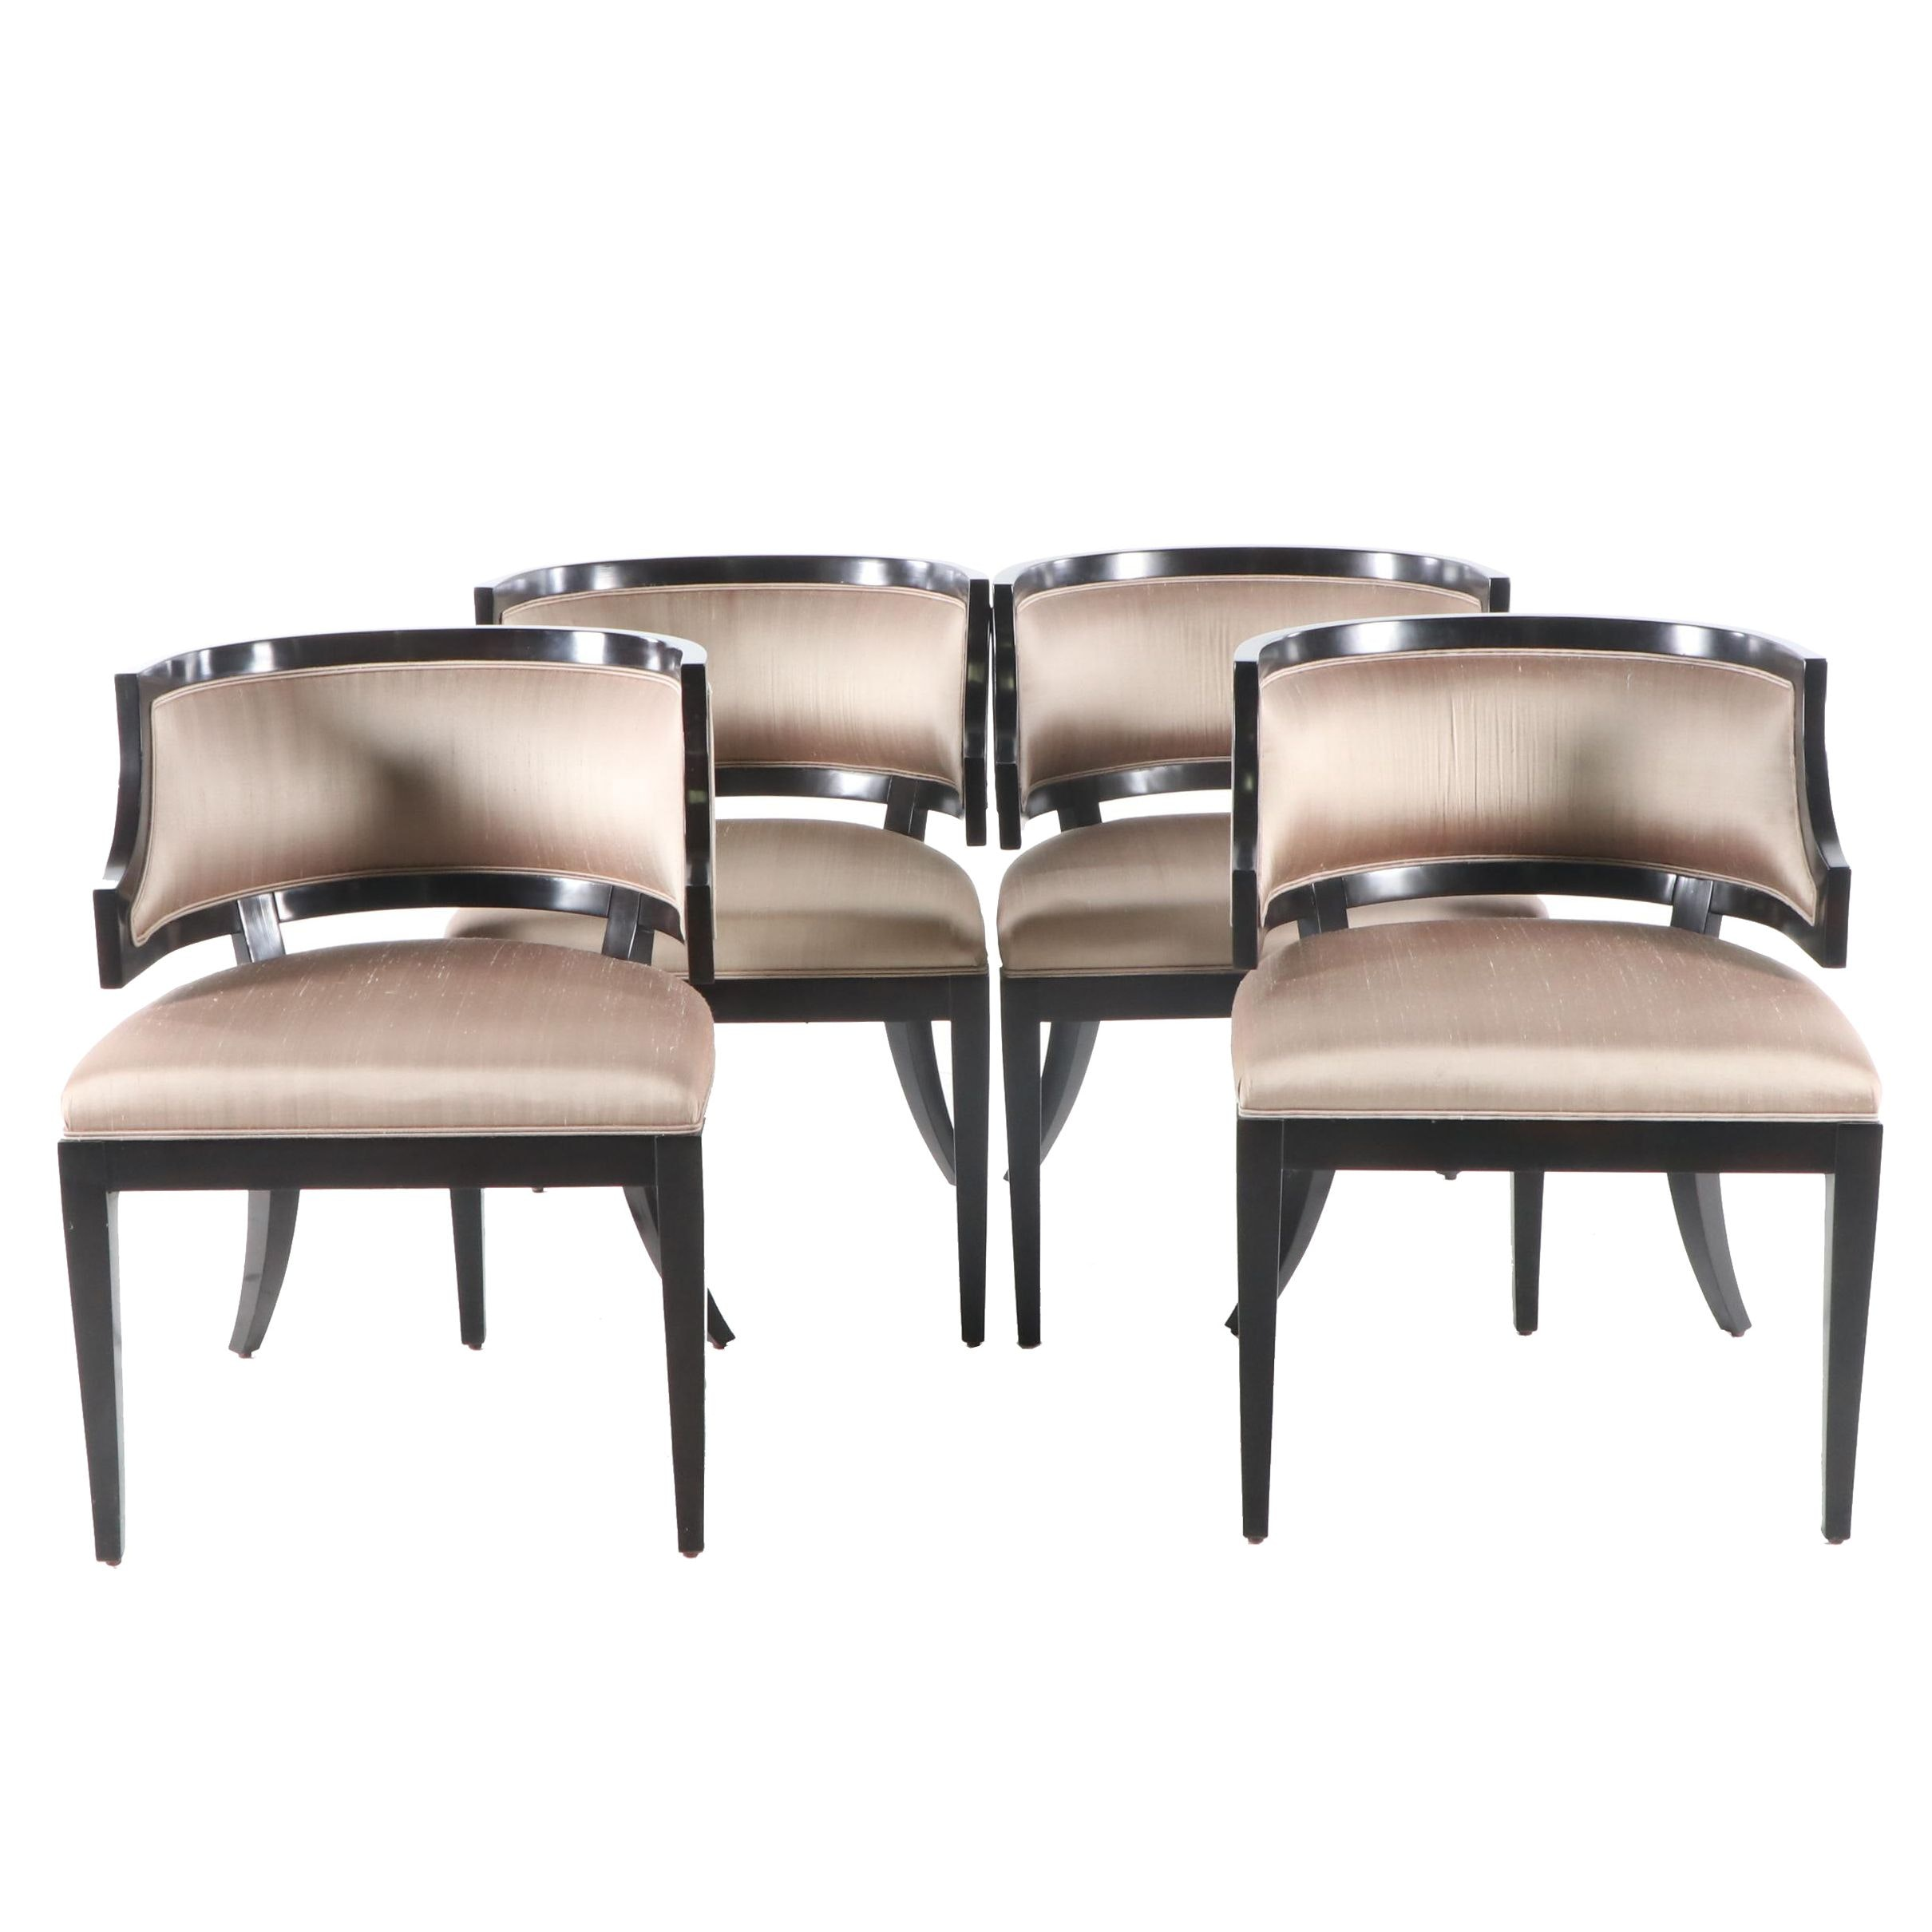 Contemporary Klismos Style Upholstered Chairs